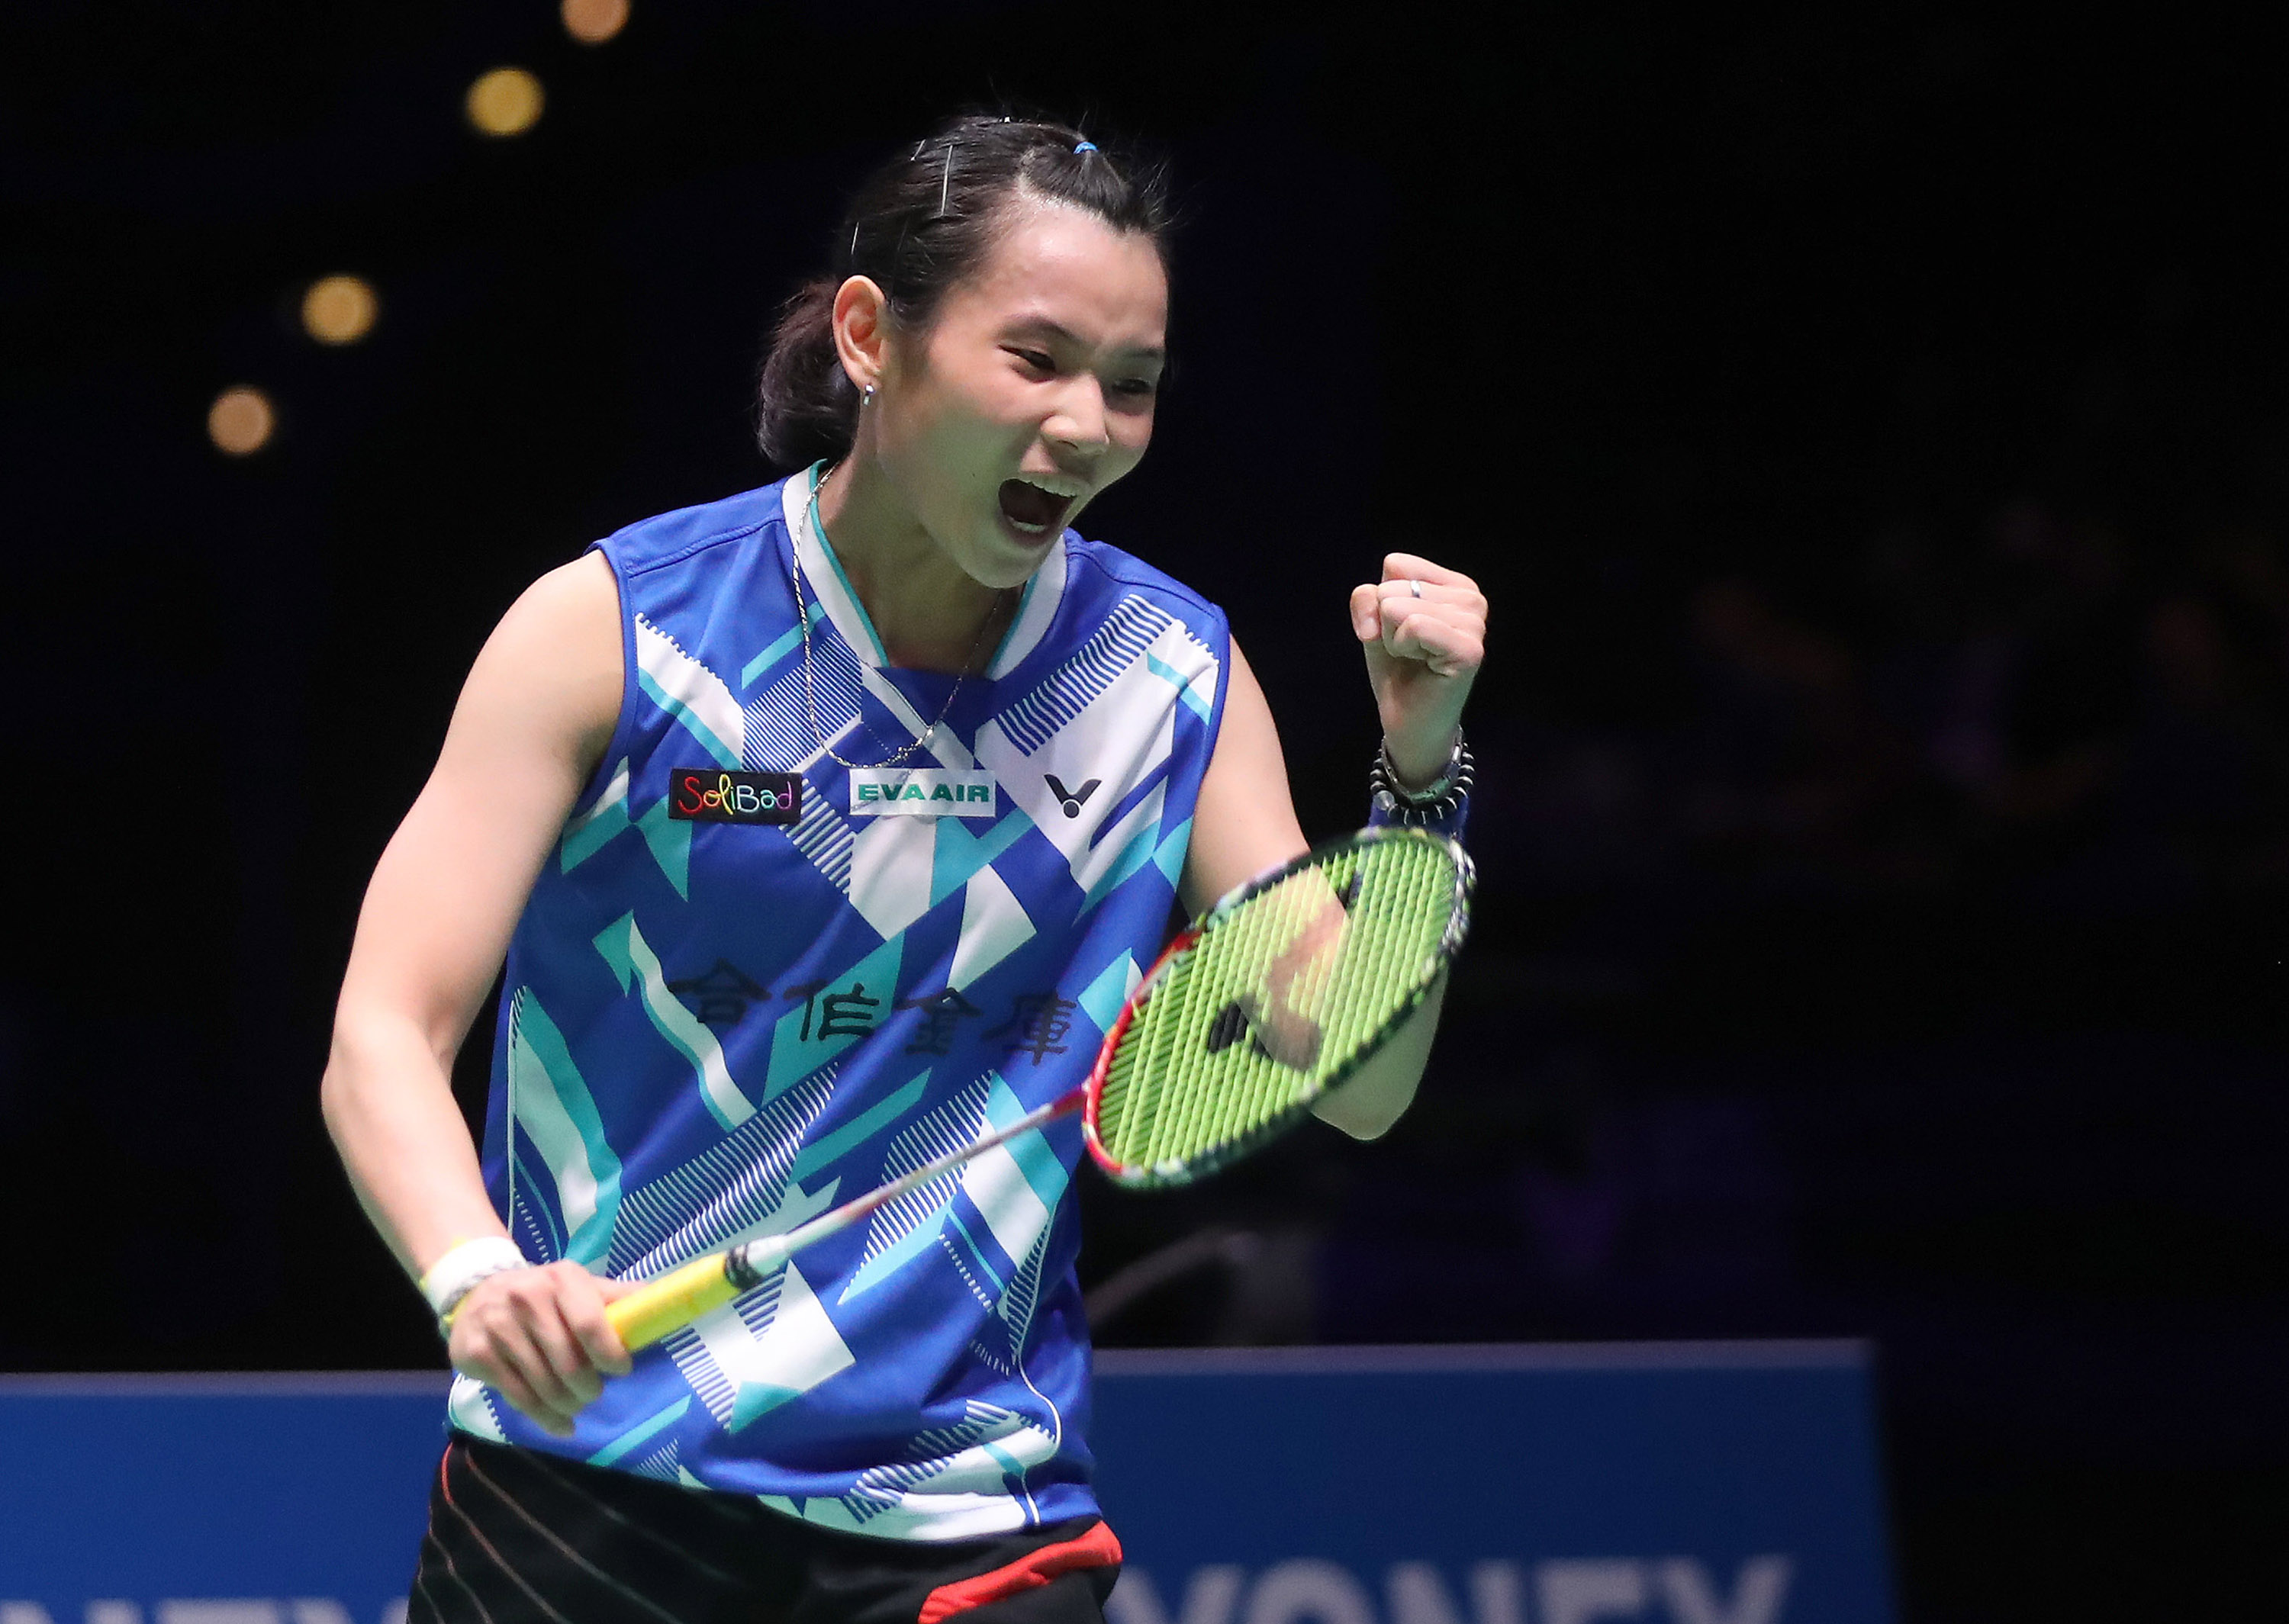 Shuttler Tai Tzu ying among star attractions at PBL auction